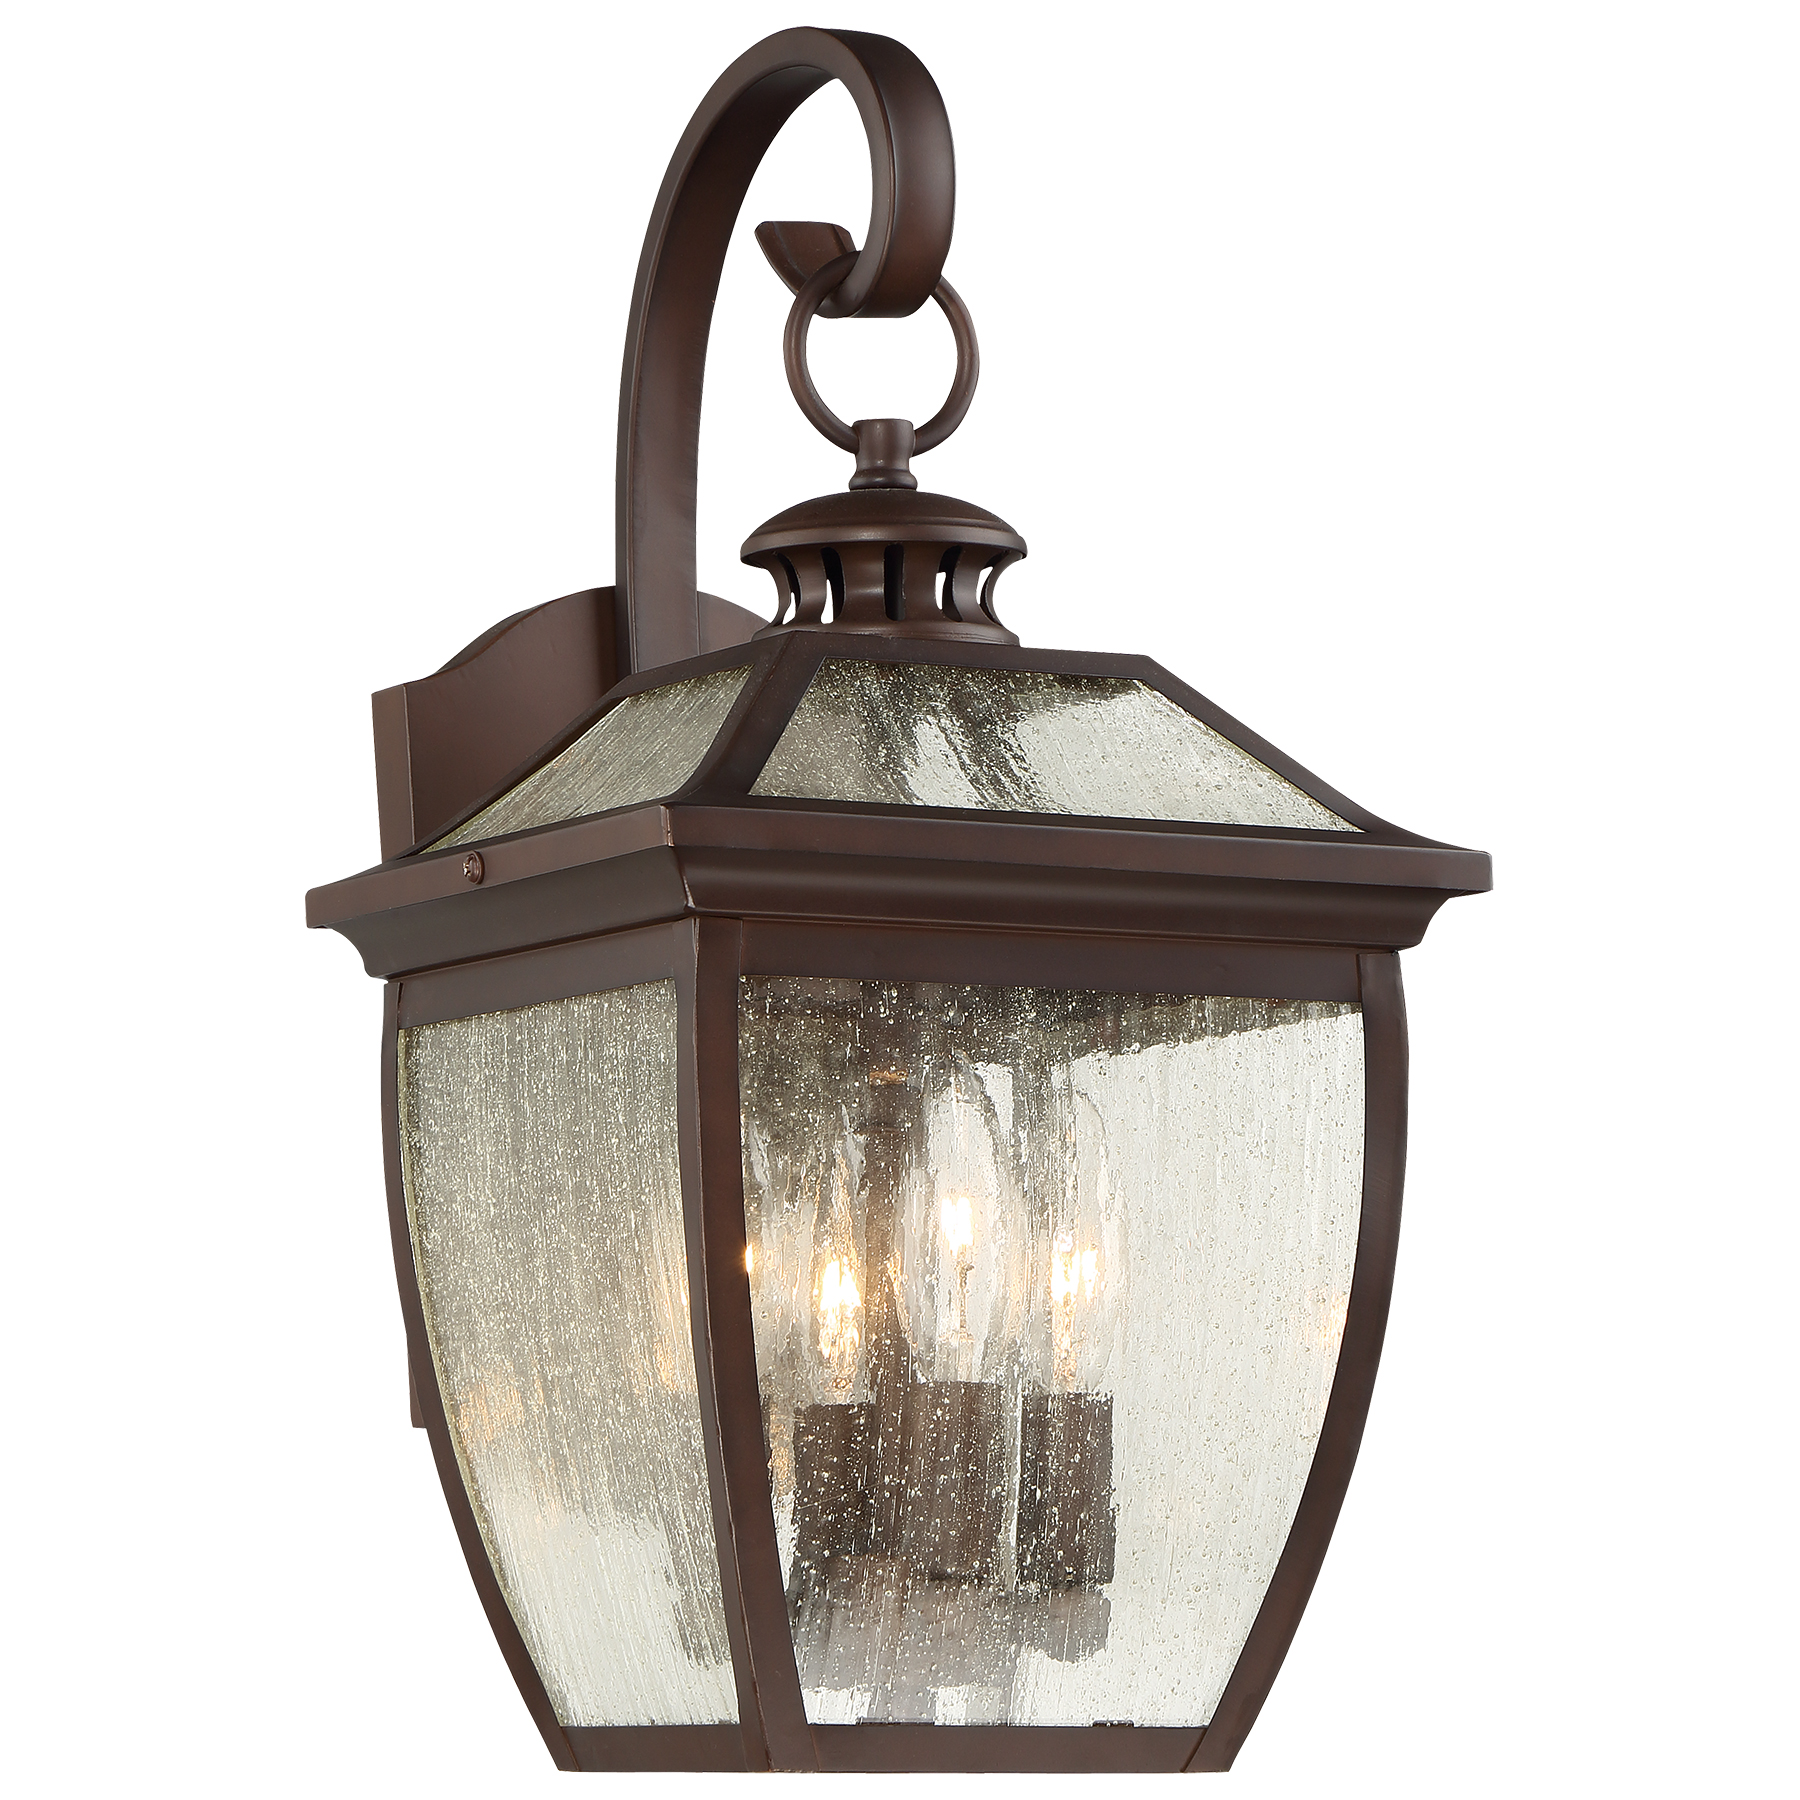 Minka group brands the great outdoorsreg 72522 246 sunnybrook 4 light outdoor wall mount aloadofball Images